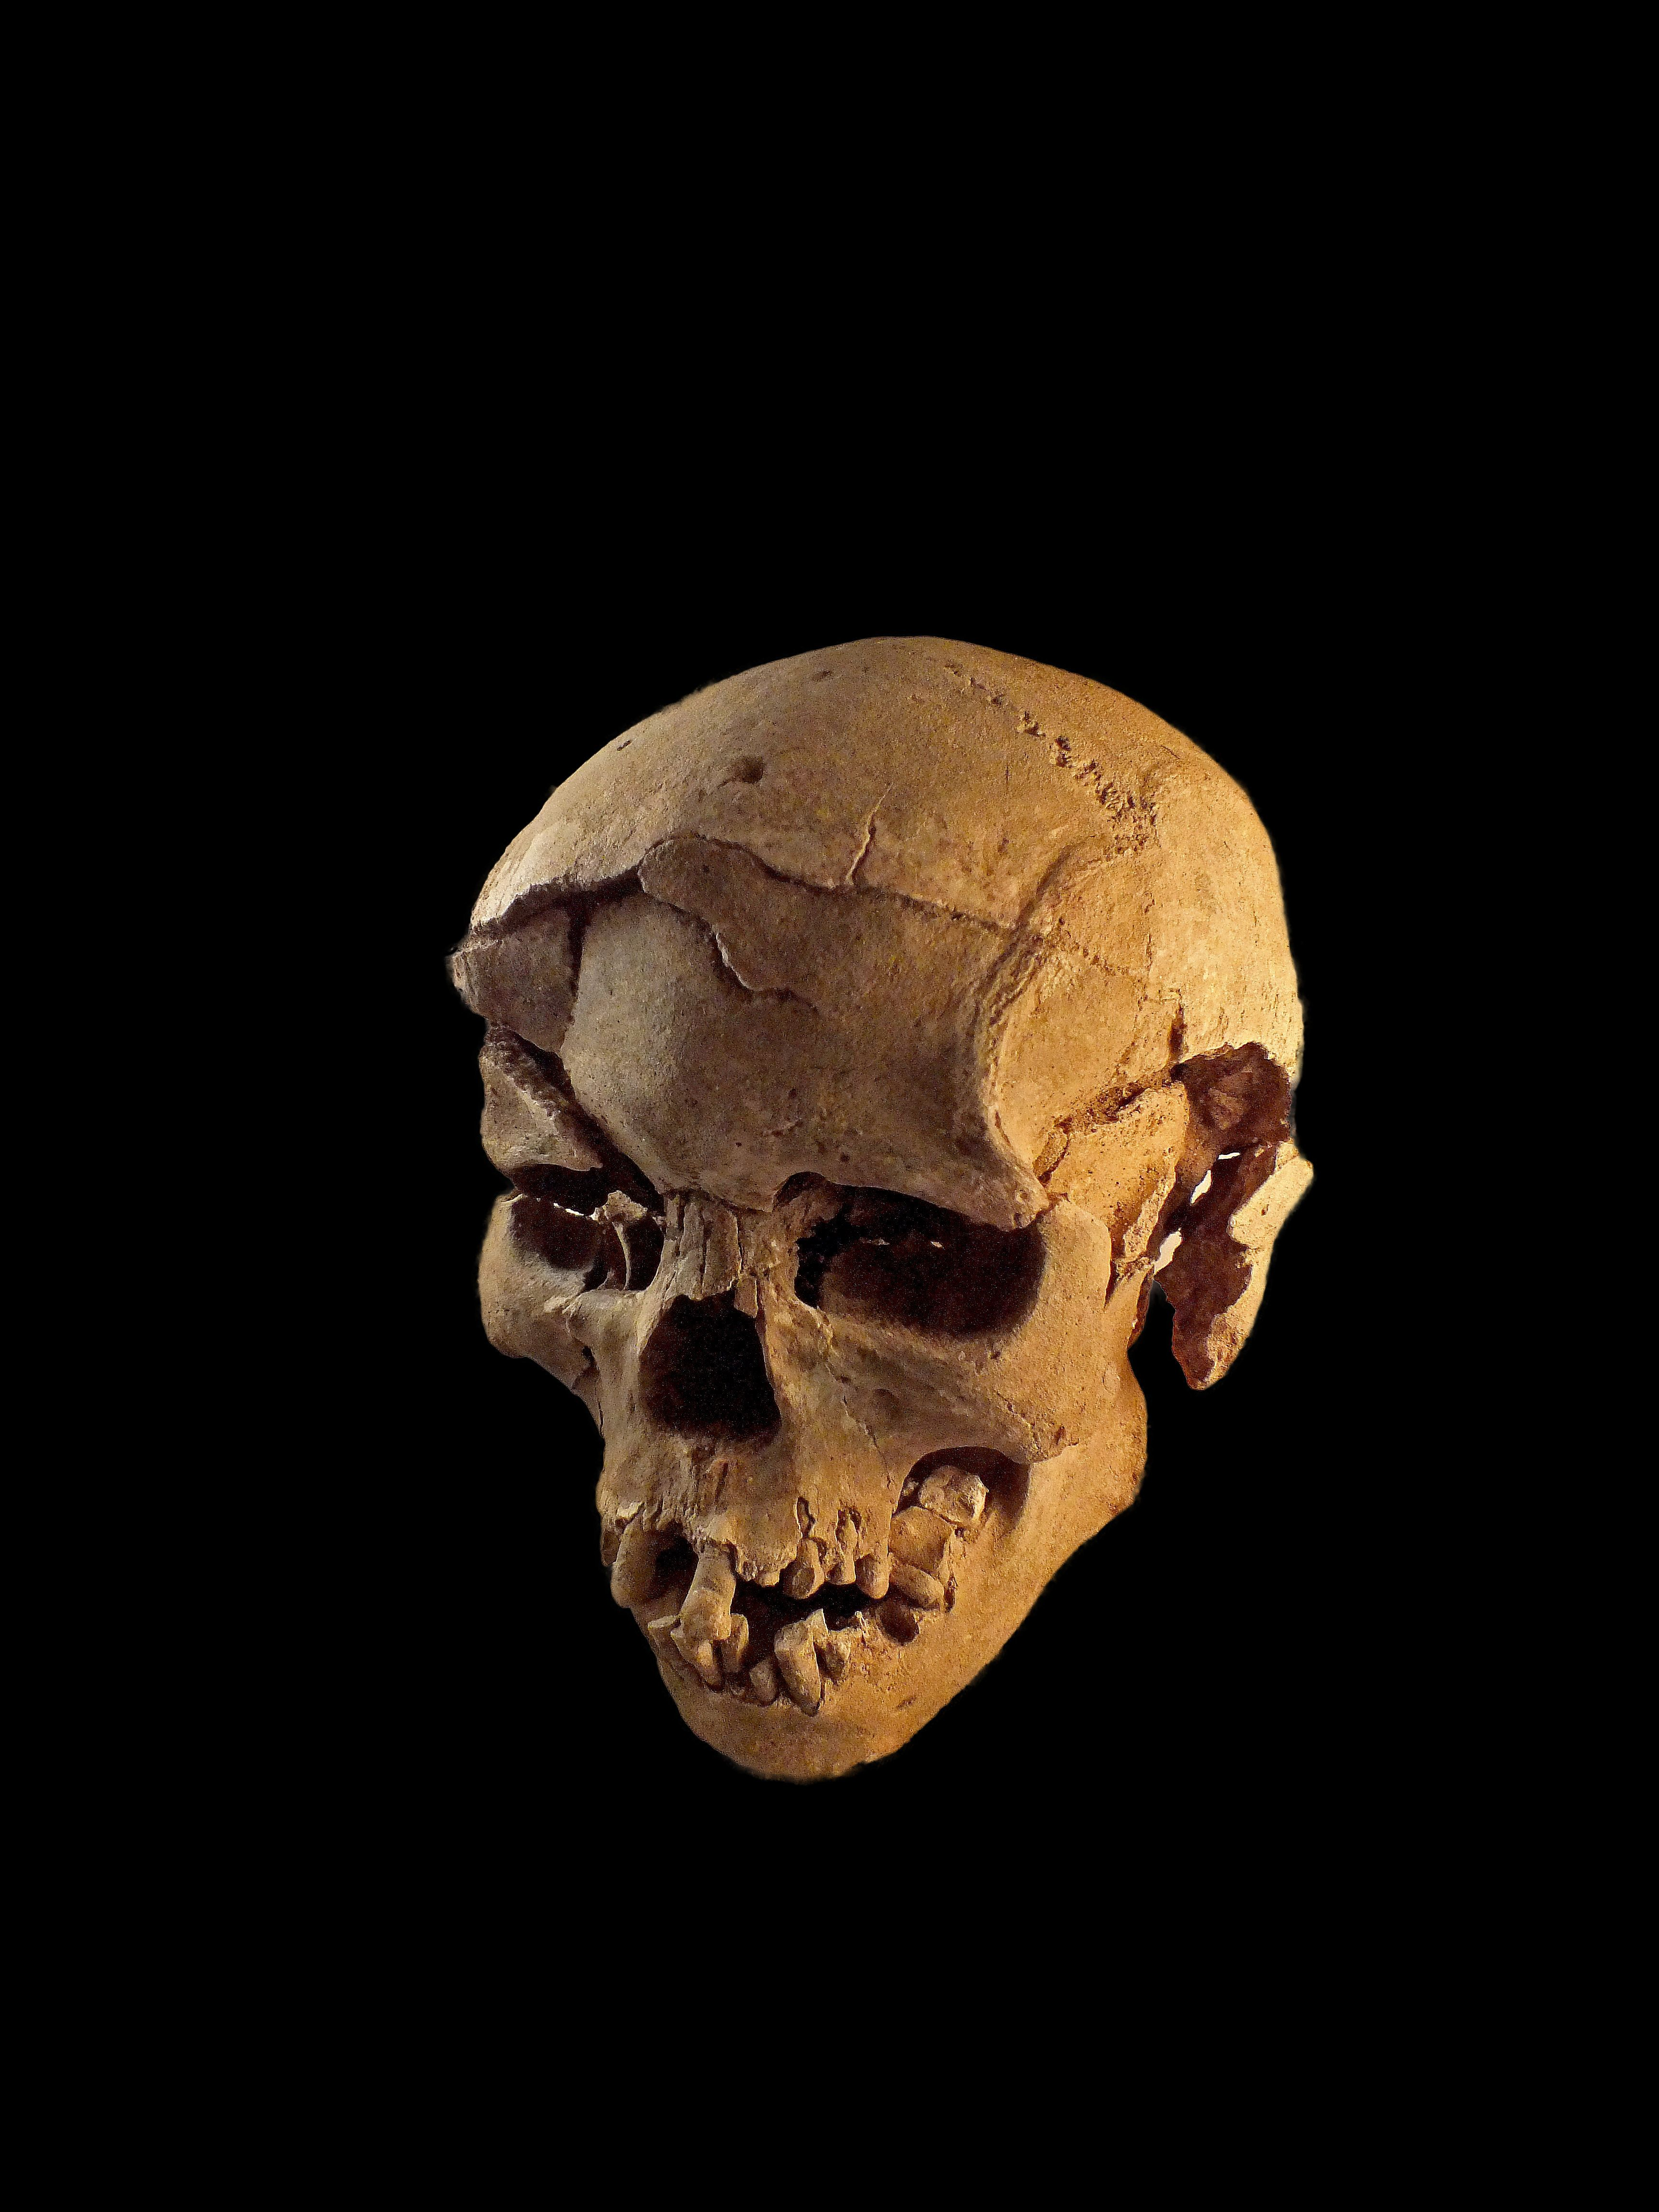 A skullwith multiple fracture wounds, likely made by a blunt instrument such as a club.